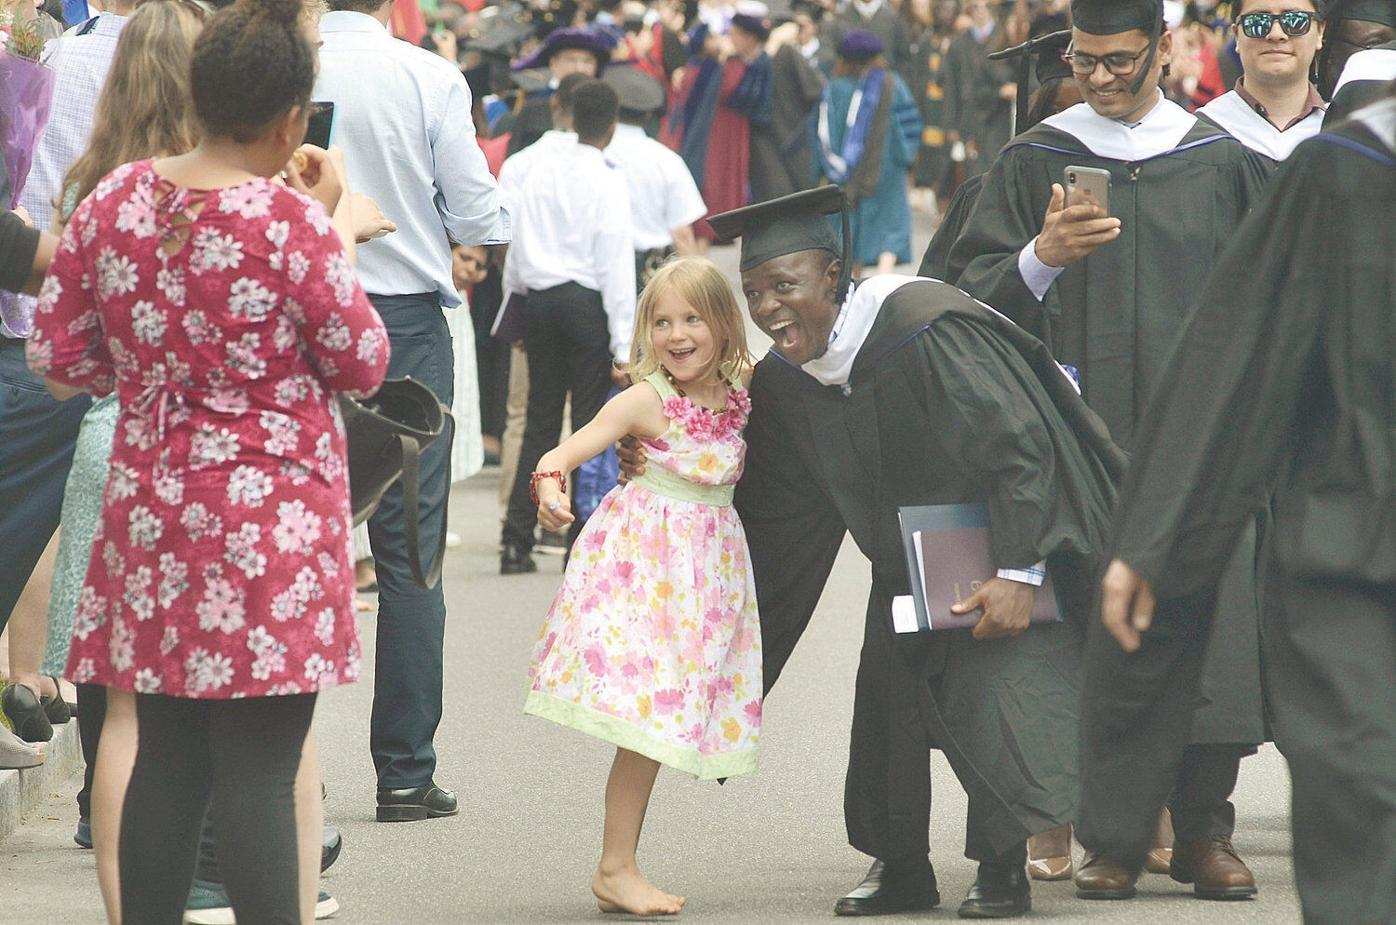 Williams grads urged to make their 'brains and abilities useful'